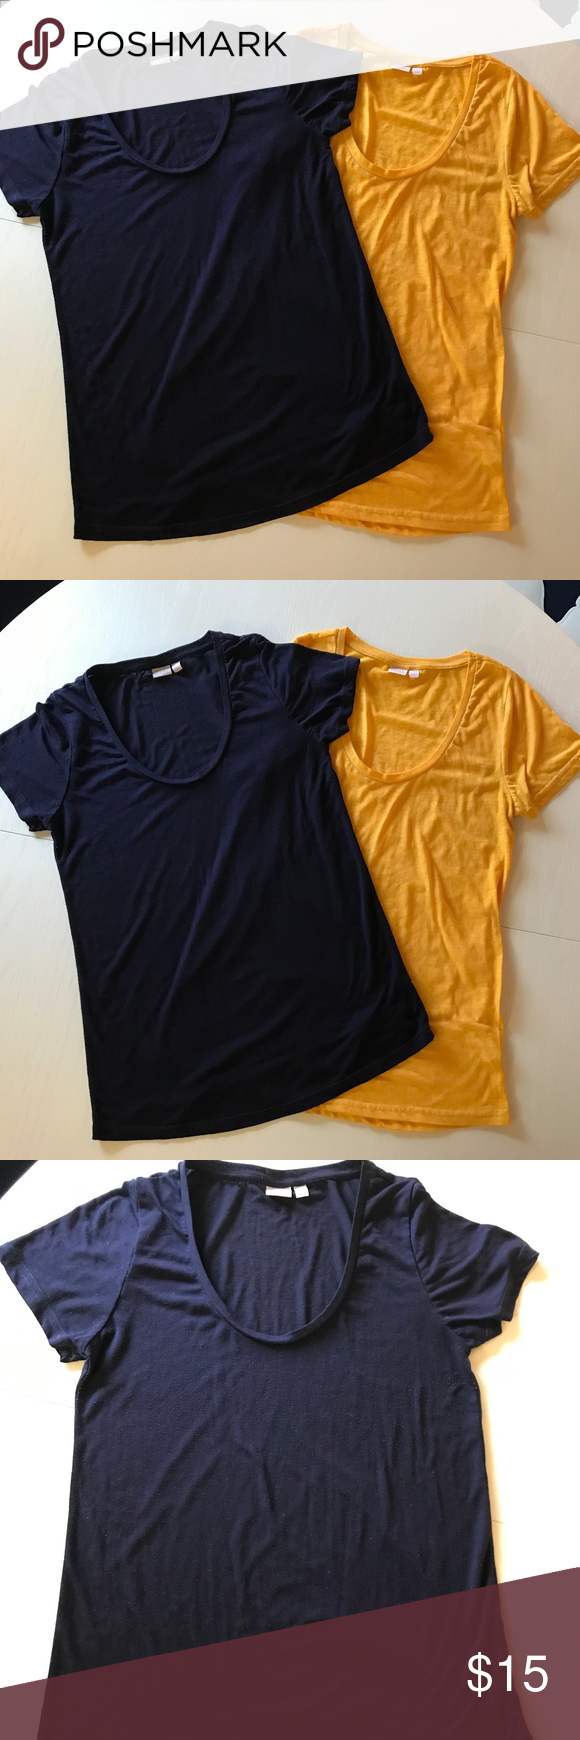 Nordstrom Make + Model 'Gotta Have It' Tees Nordstrom (Brand: Make + Model) 'Gotta Have It' Scoop Neck Tees. Sizes: Small. Colors: Yellow & Dark Blue/Purple. Last picture is a stock picture of current color options at Nordstrom, listed t-shirts are retired colors. Fabrics: 65% polyester, 35% cotton. *Excellent condition, only worn a couple times.* Nordstrom Tops Tees - Short Sleeve #gottahaveit Nordstrom Make + Model 'Gotta Have It' Tees Nordstrom (Brand: Make + Model) 'Gotta Have It' Scoop Neck #gottahaveit